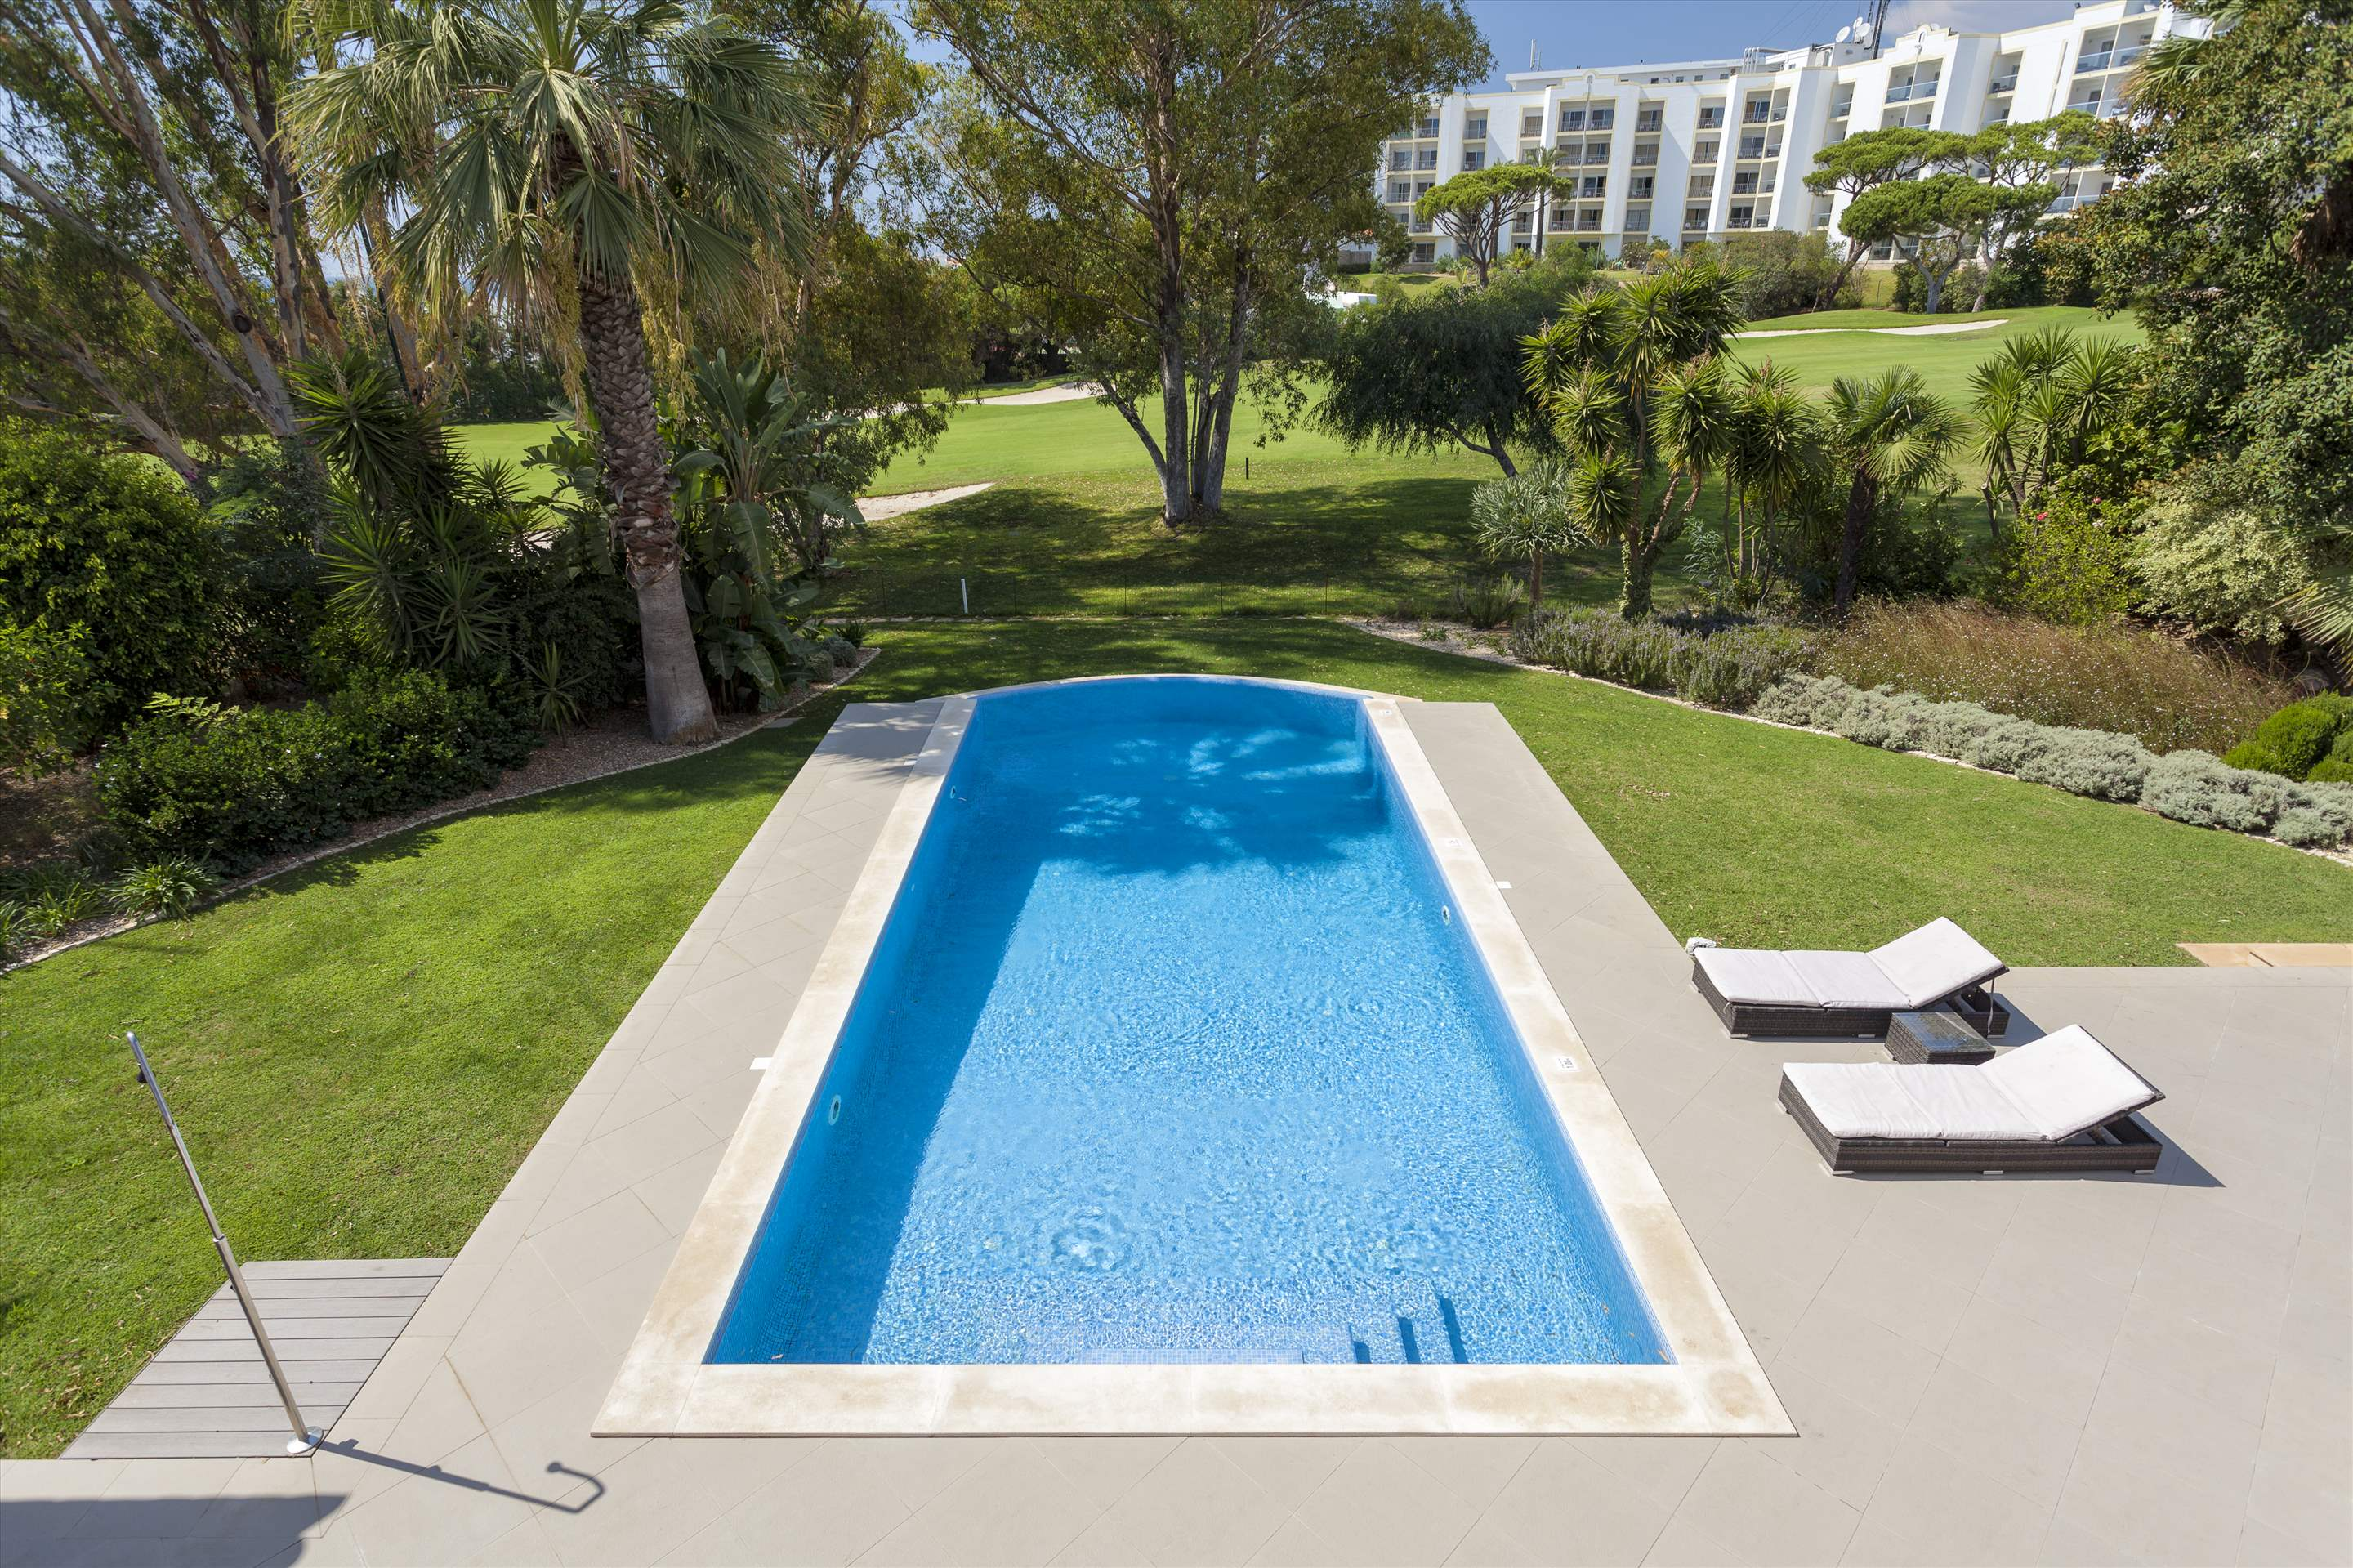 Villa Mar Azul, 5 bedroom villa in Vale do Lobo, Algarve Photo #13